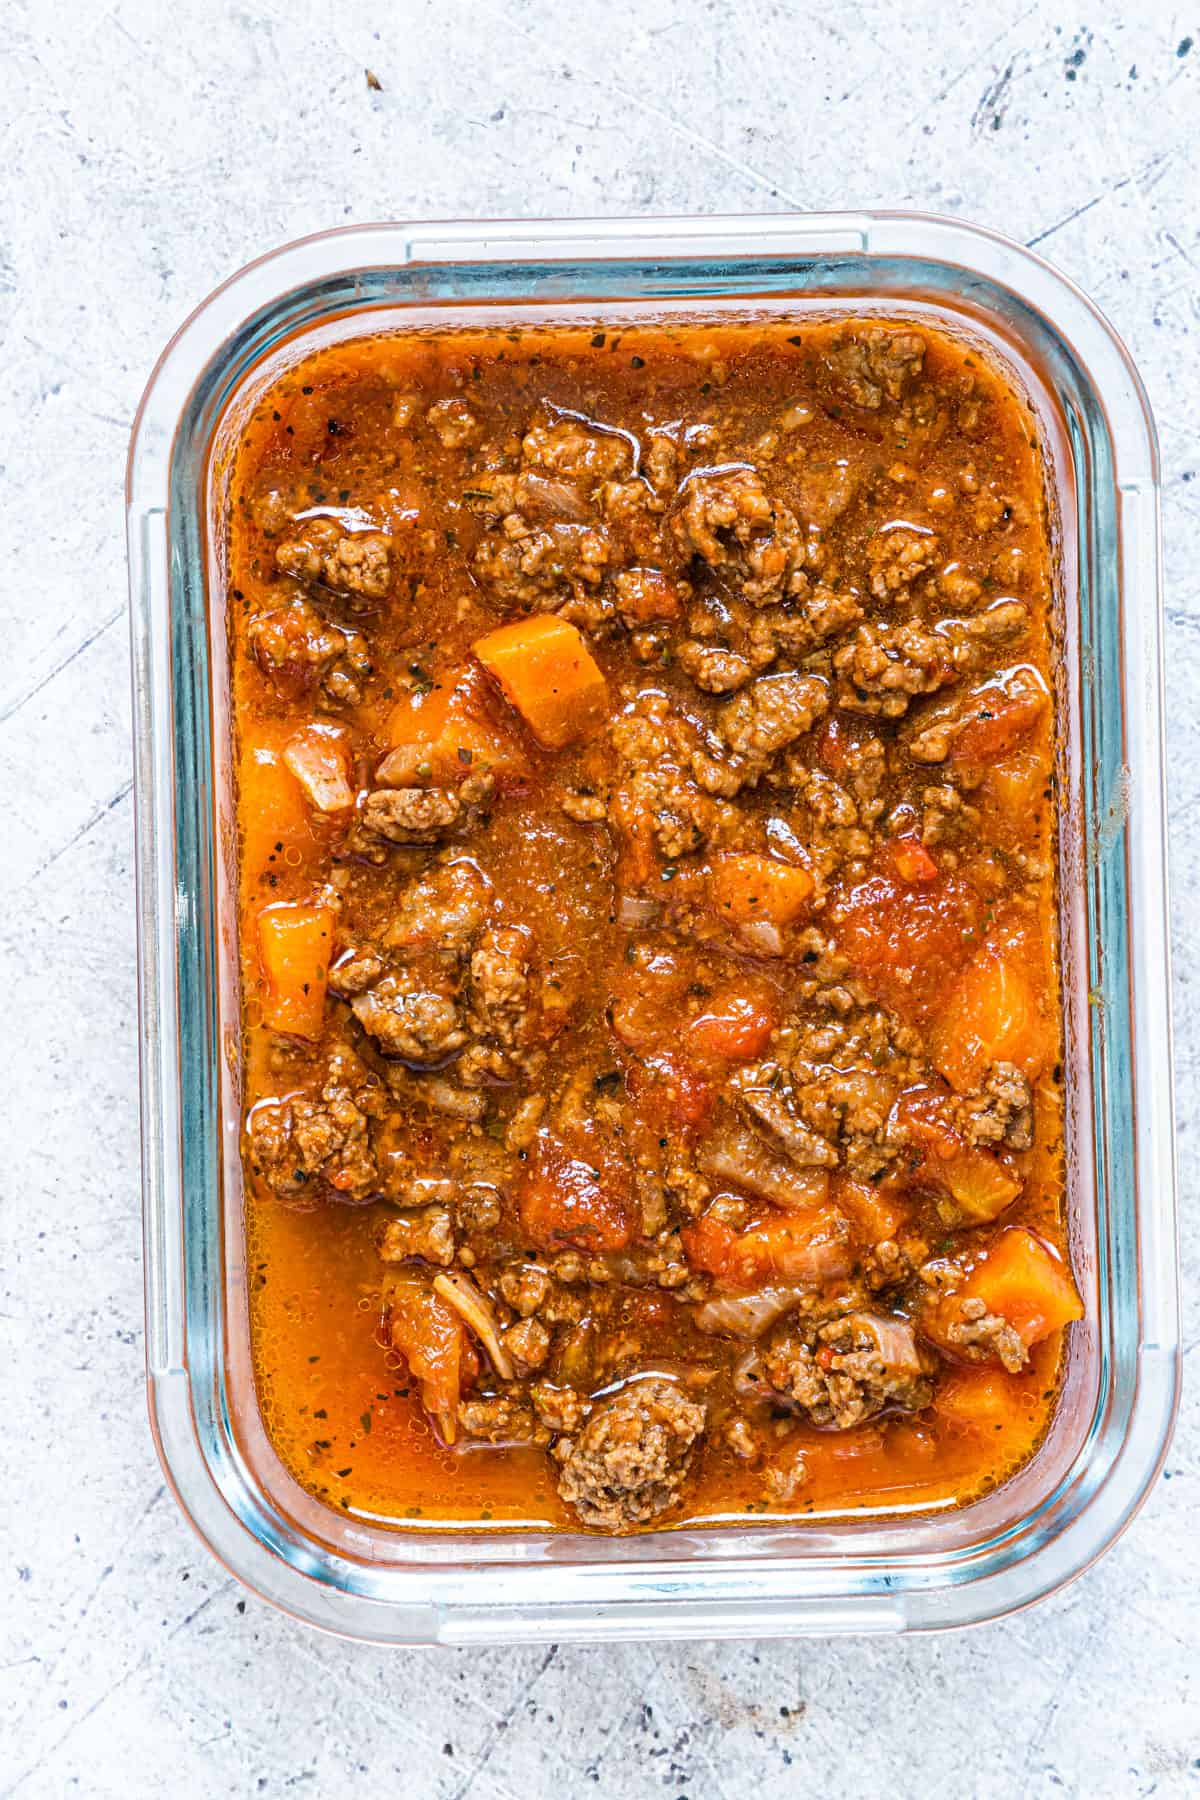 a portion of instant pot bolognese sauce in a glass storage container